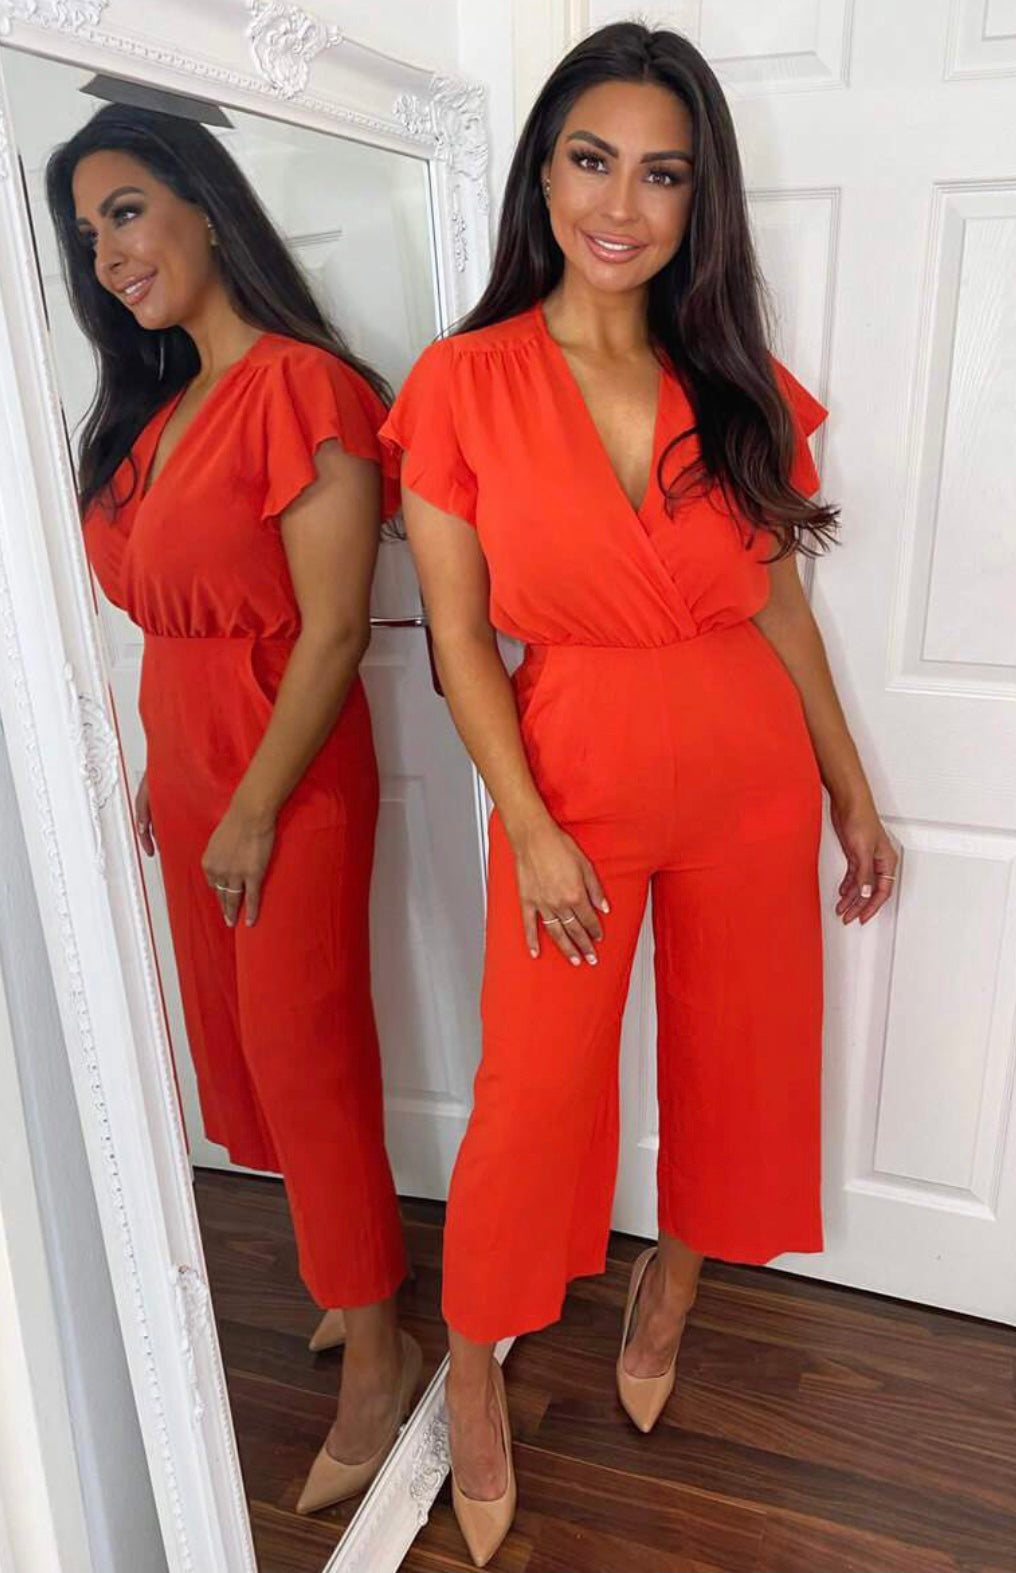 Cici Jumpsuit PRE ORDER Arriving 19 May